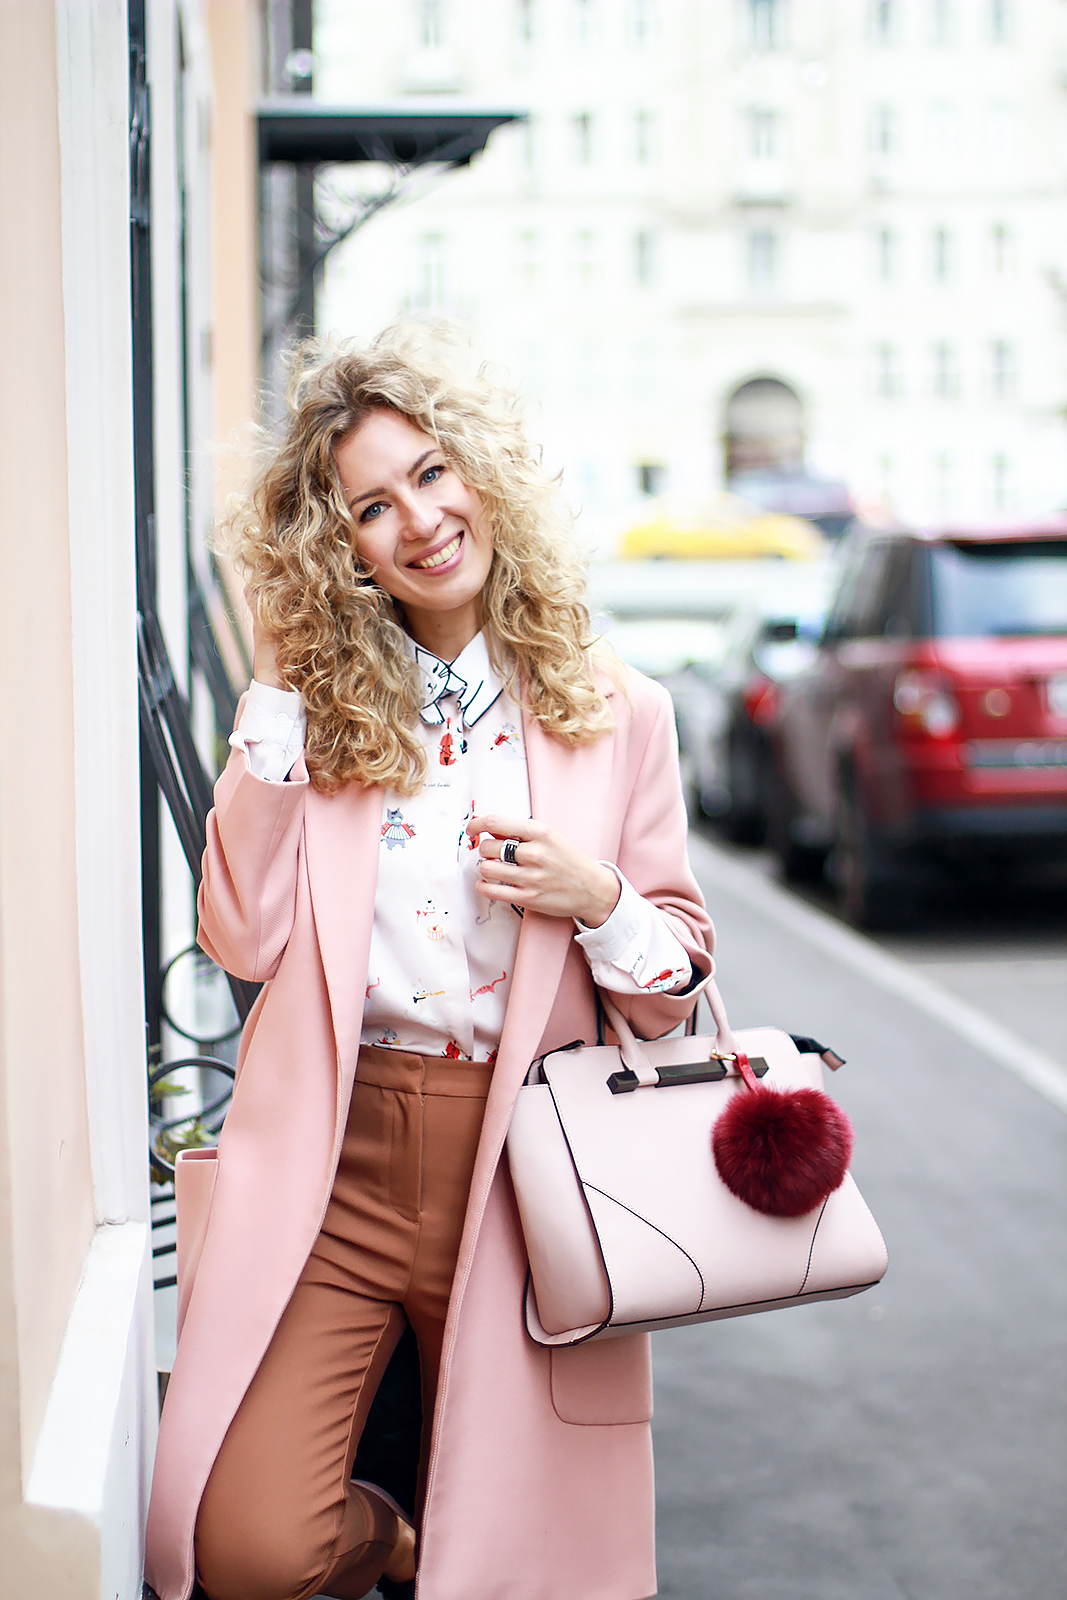 margarita_maslova_pink_coat_caramel_pants_cats_blouse_rose_quartz_bag_streetstyle_